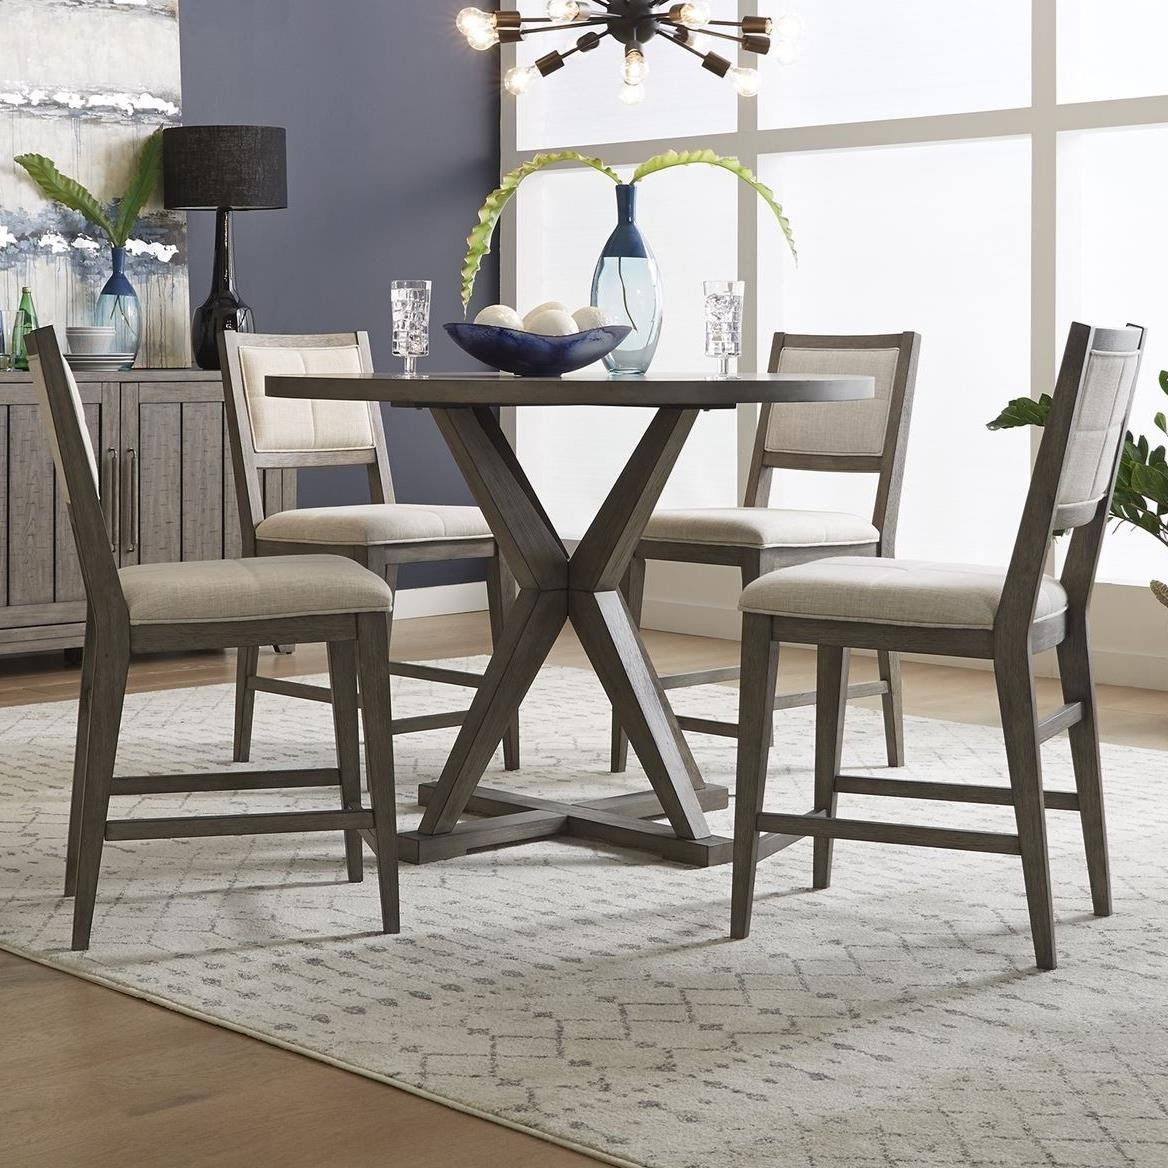 Crescent Creek 5-Piece Gathering Table Set by Libby at Walker's Furniture